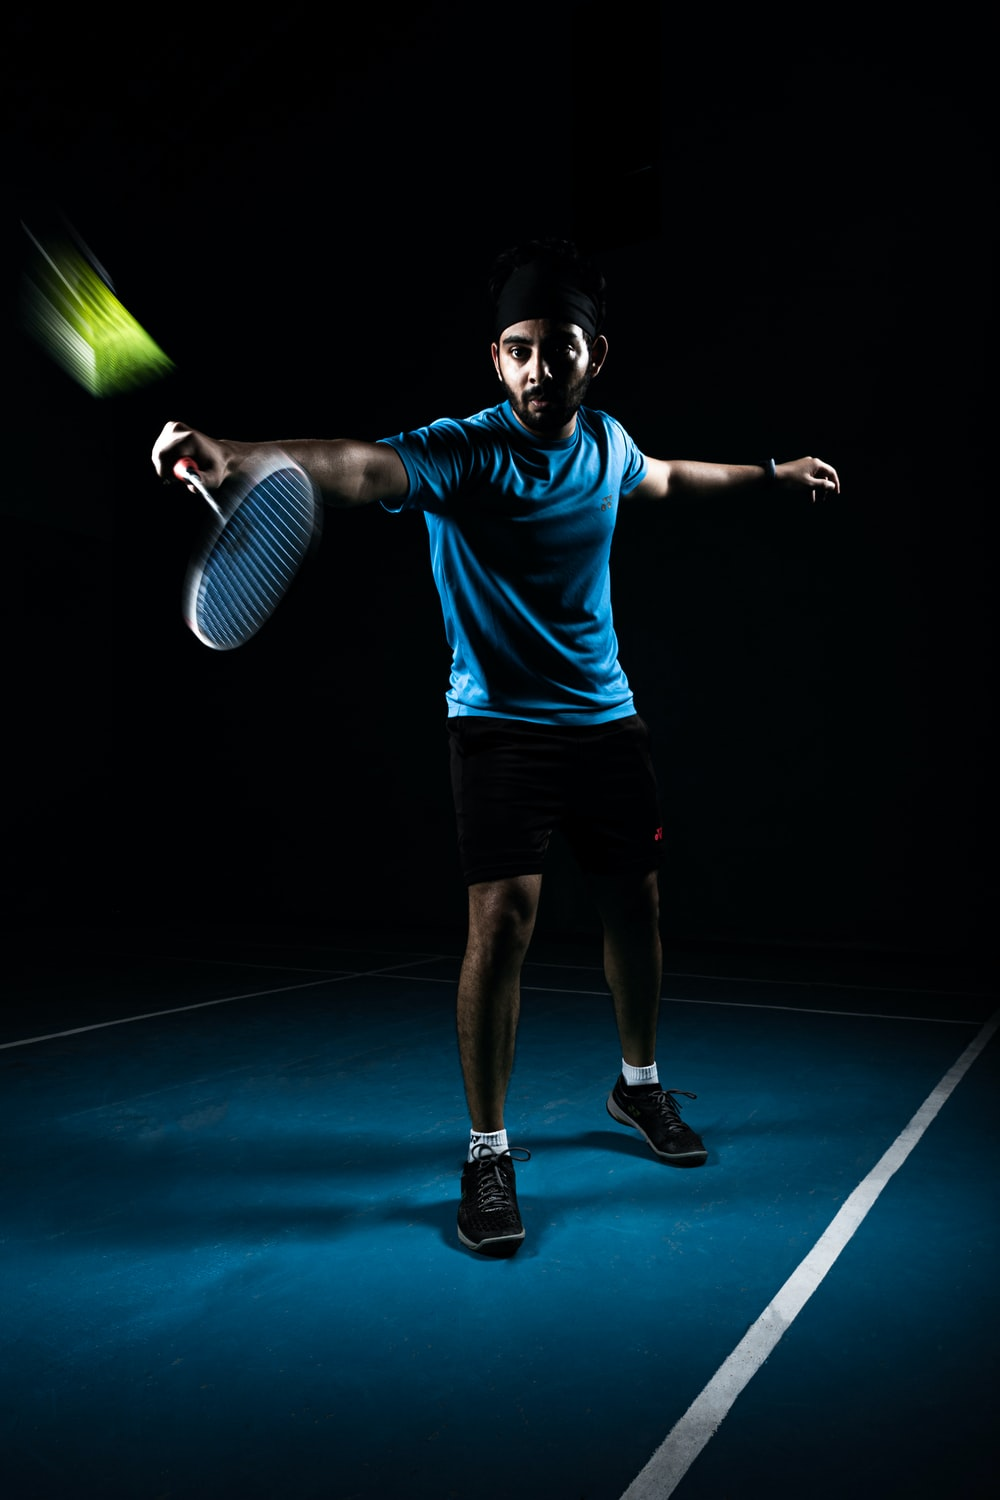 man in blue crew neck t-shirt and black shorts holding green tennis racket